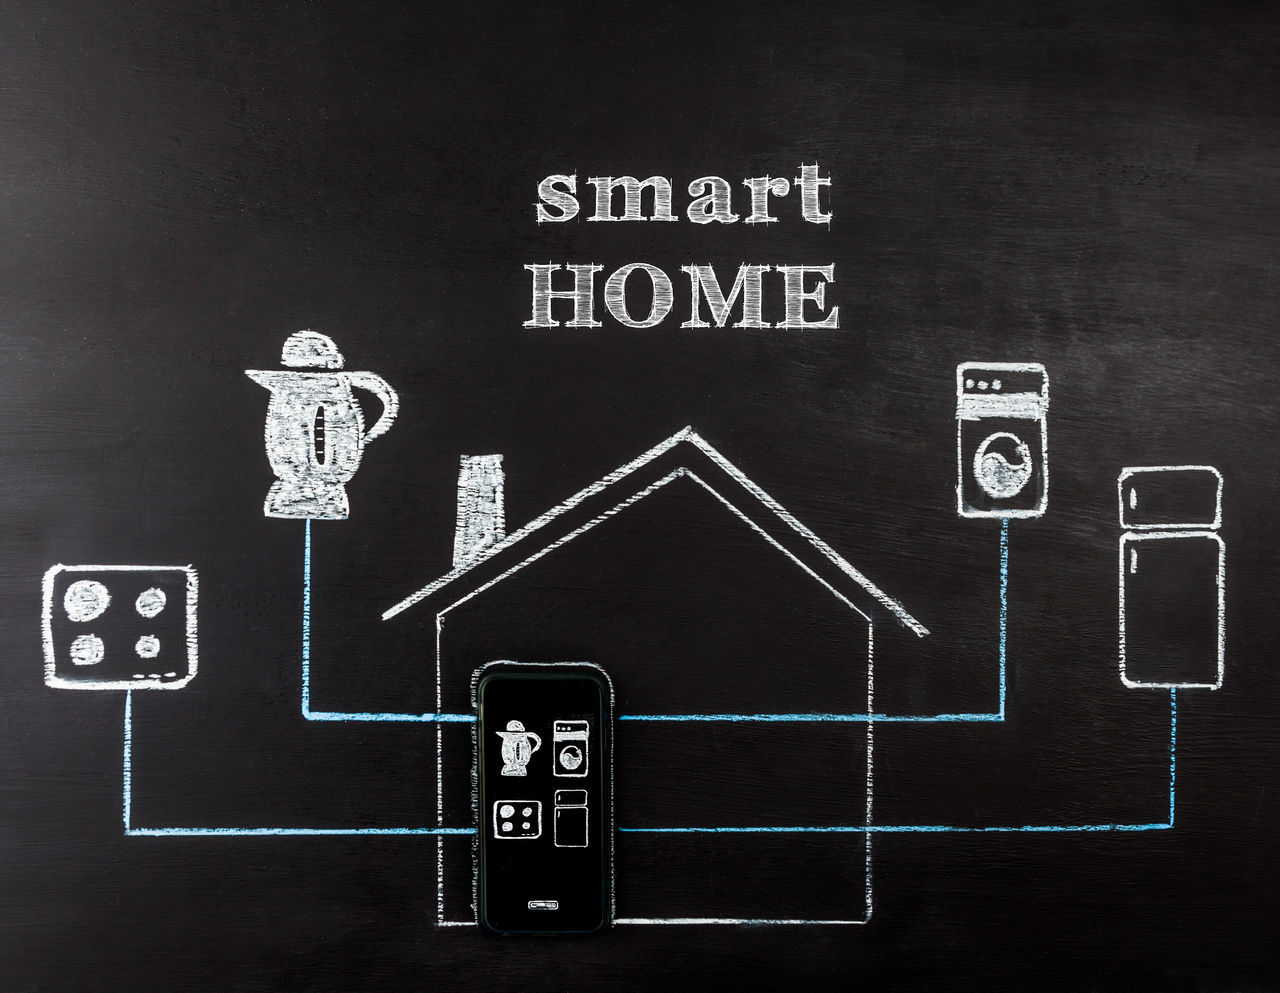 Smart home concept hand drawing on chalk board. Mobile phone controlling home appliances. Horizontal image with text. Appliances Blackboard  Blackboard  Chalkboard Communication Concept Conceptual Photography  Drawing No People Smart Home Smart House